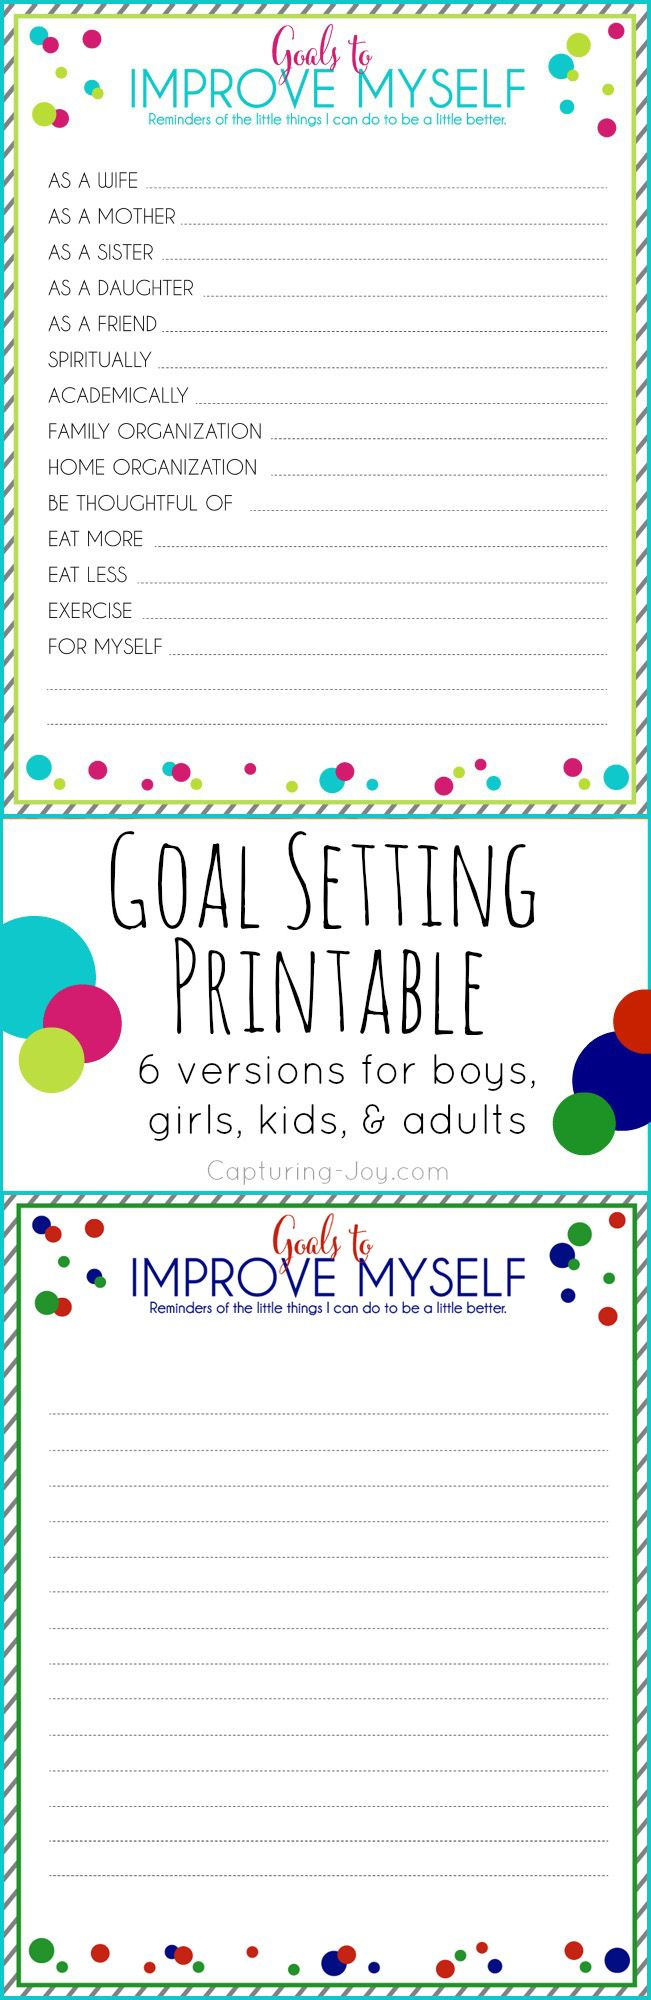 Goals to Improve myself Free Printable - Capturing Joy with Kristen Duke